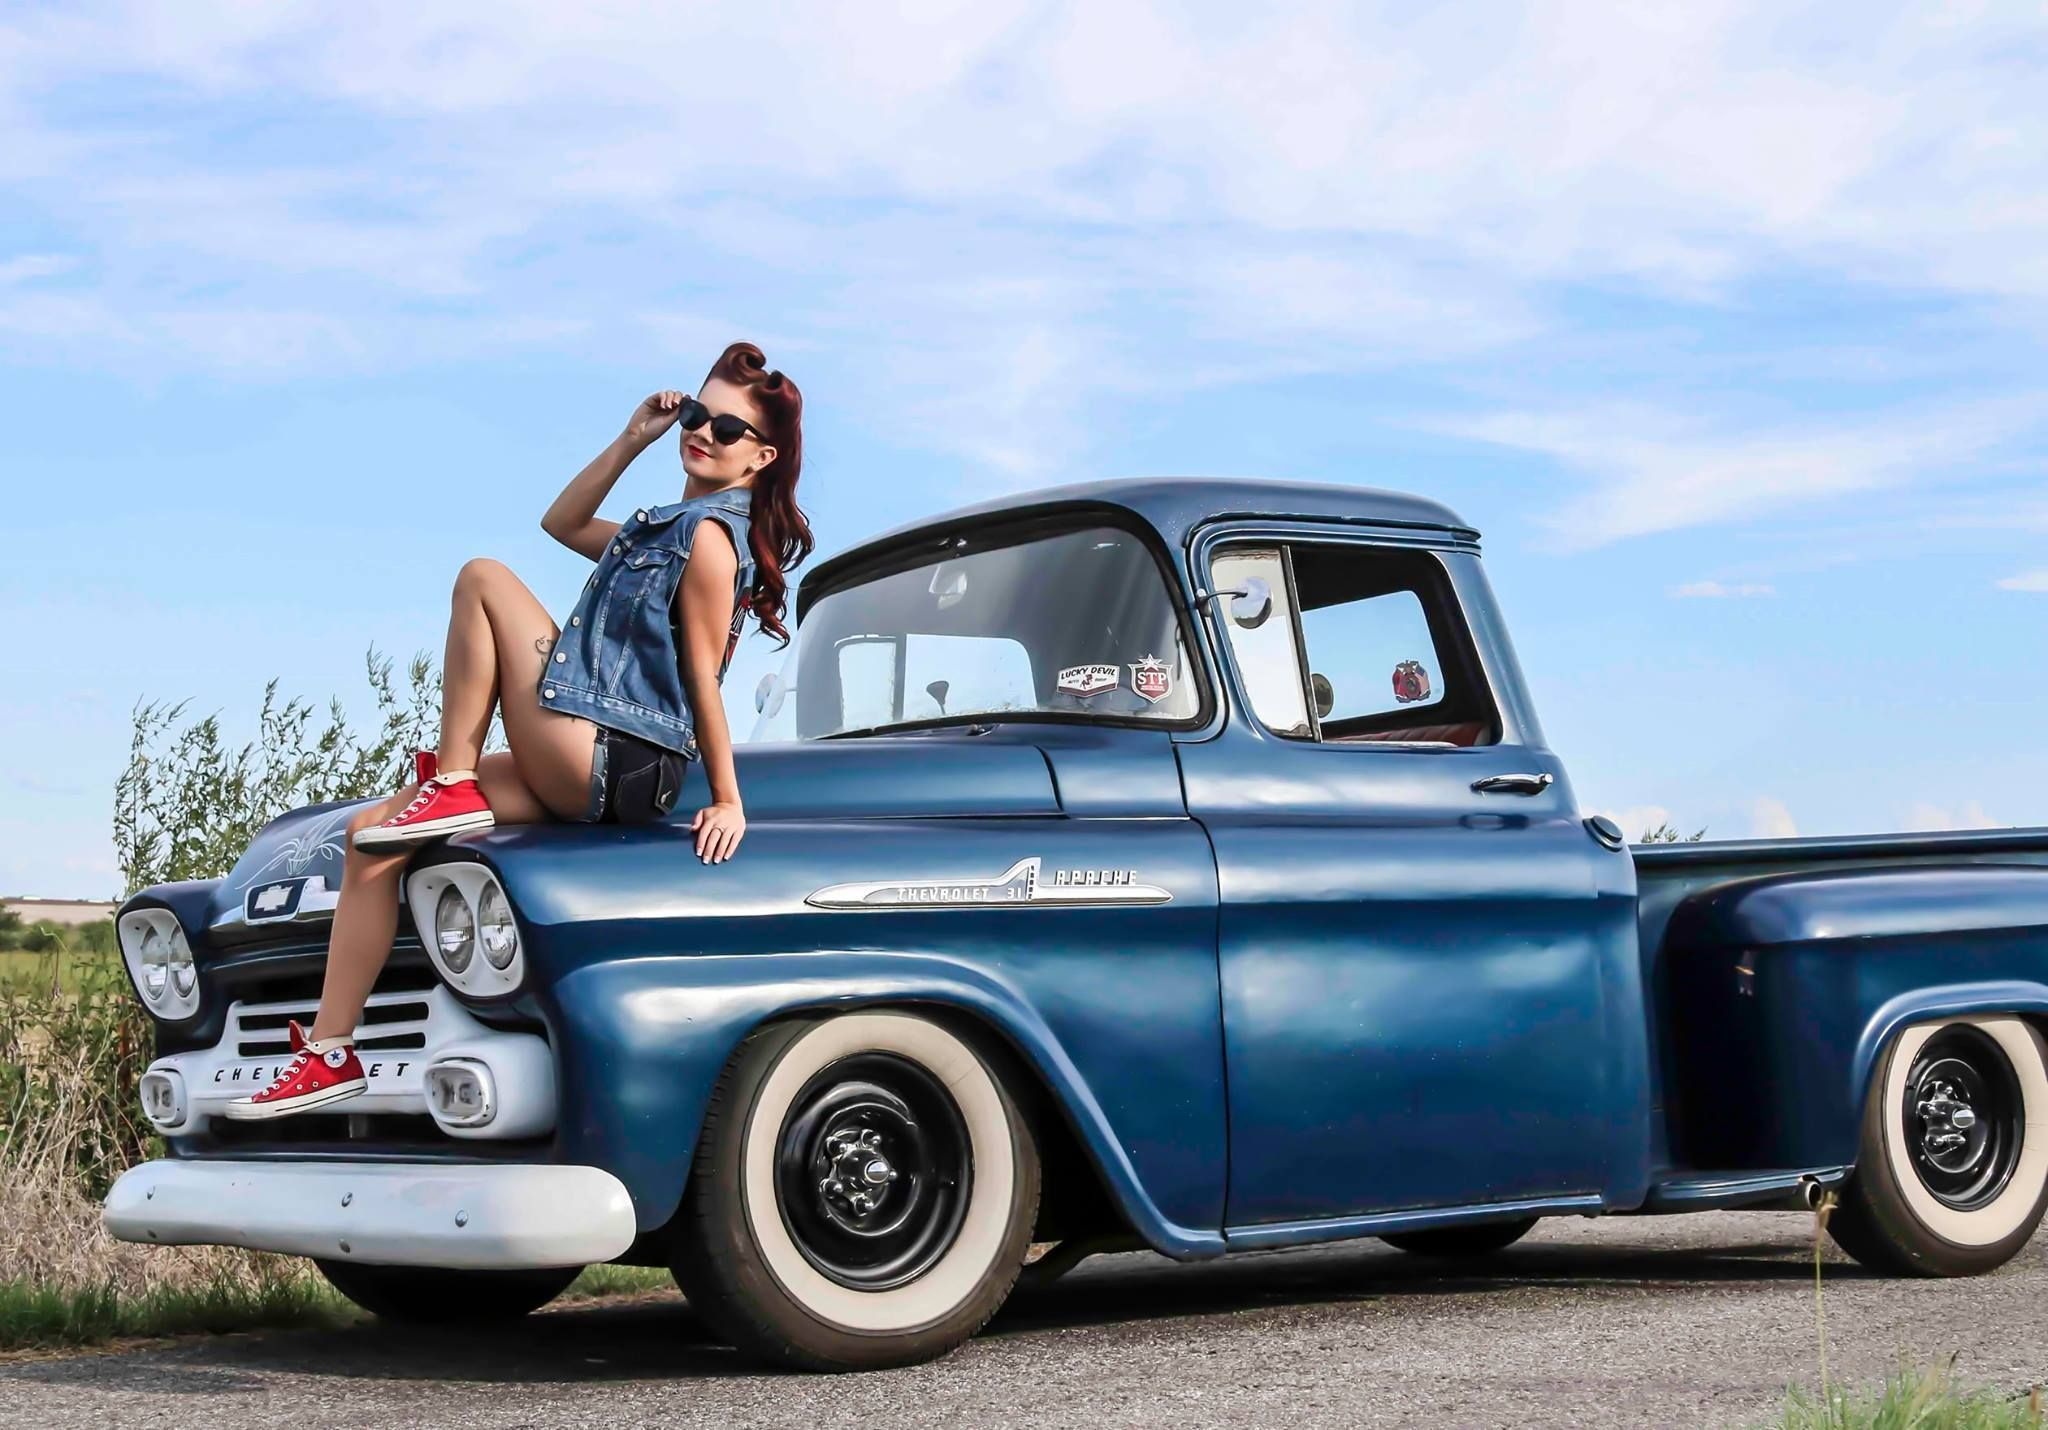 1958 chevy pickup truck and pinup vehicles chevy trucks pinterest chevy pickup trucks. Black Bedroom Furniture Sets. Home Design Ideas